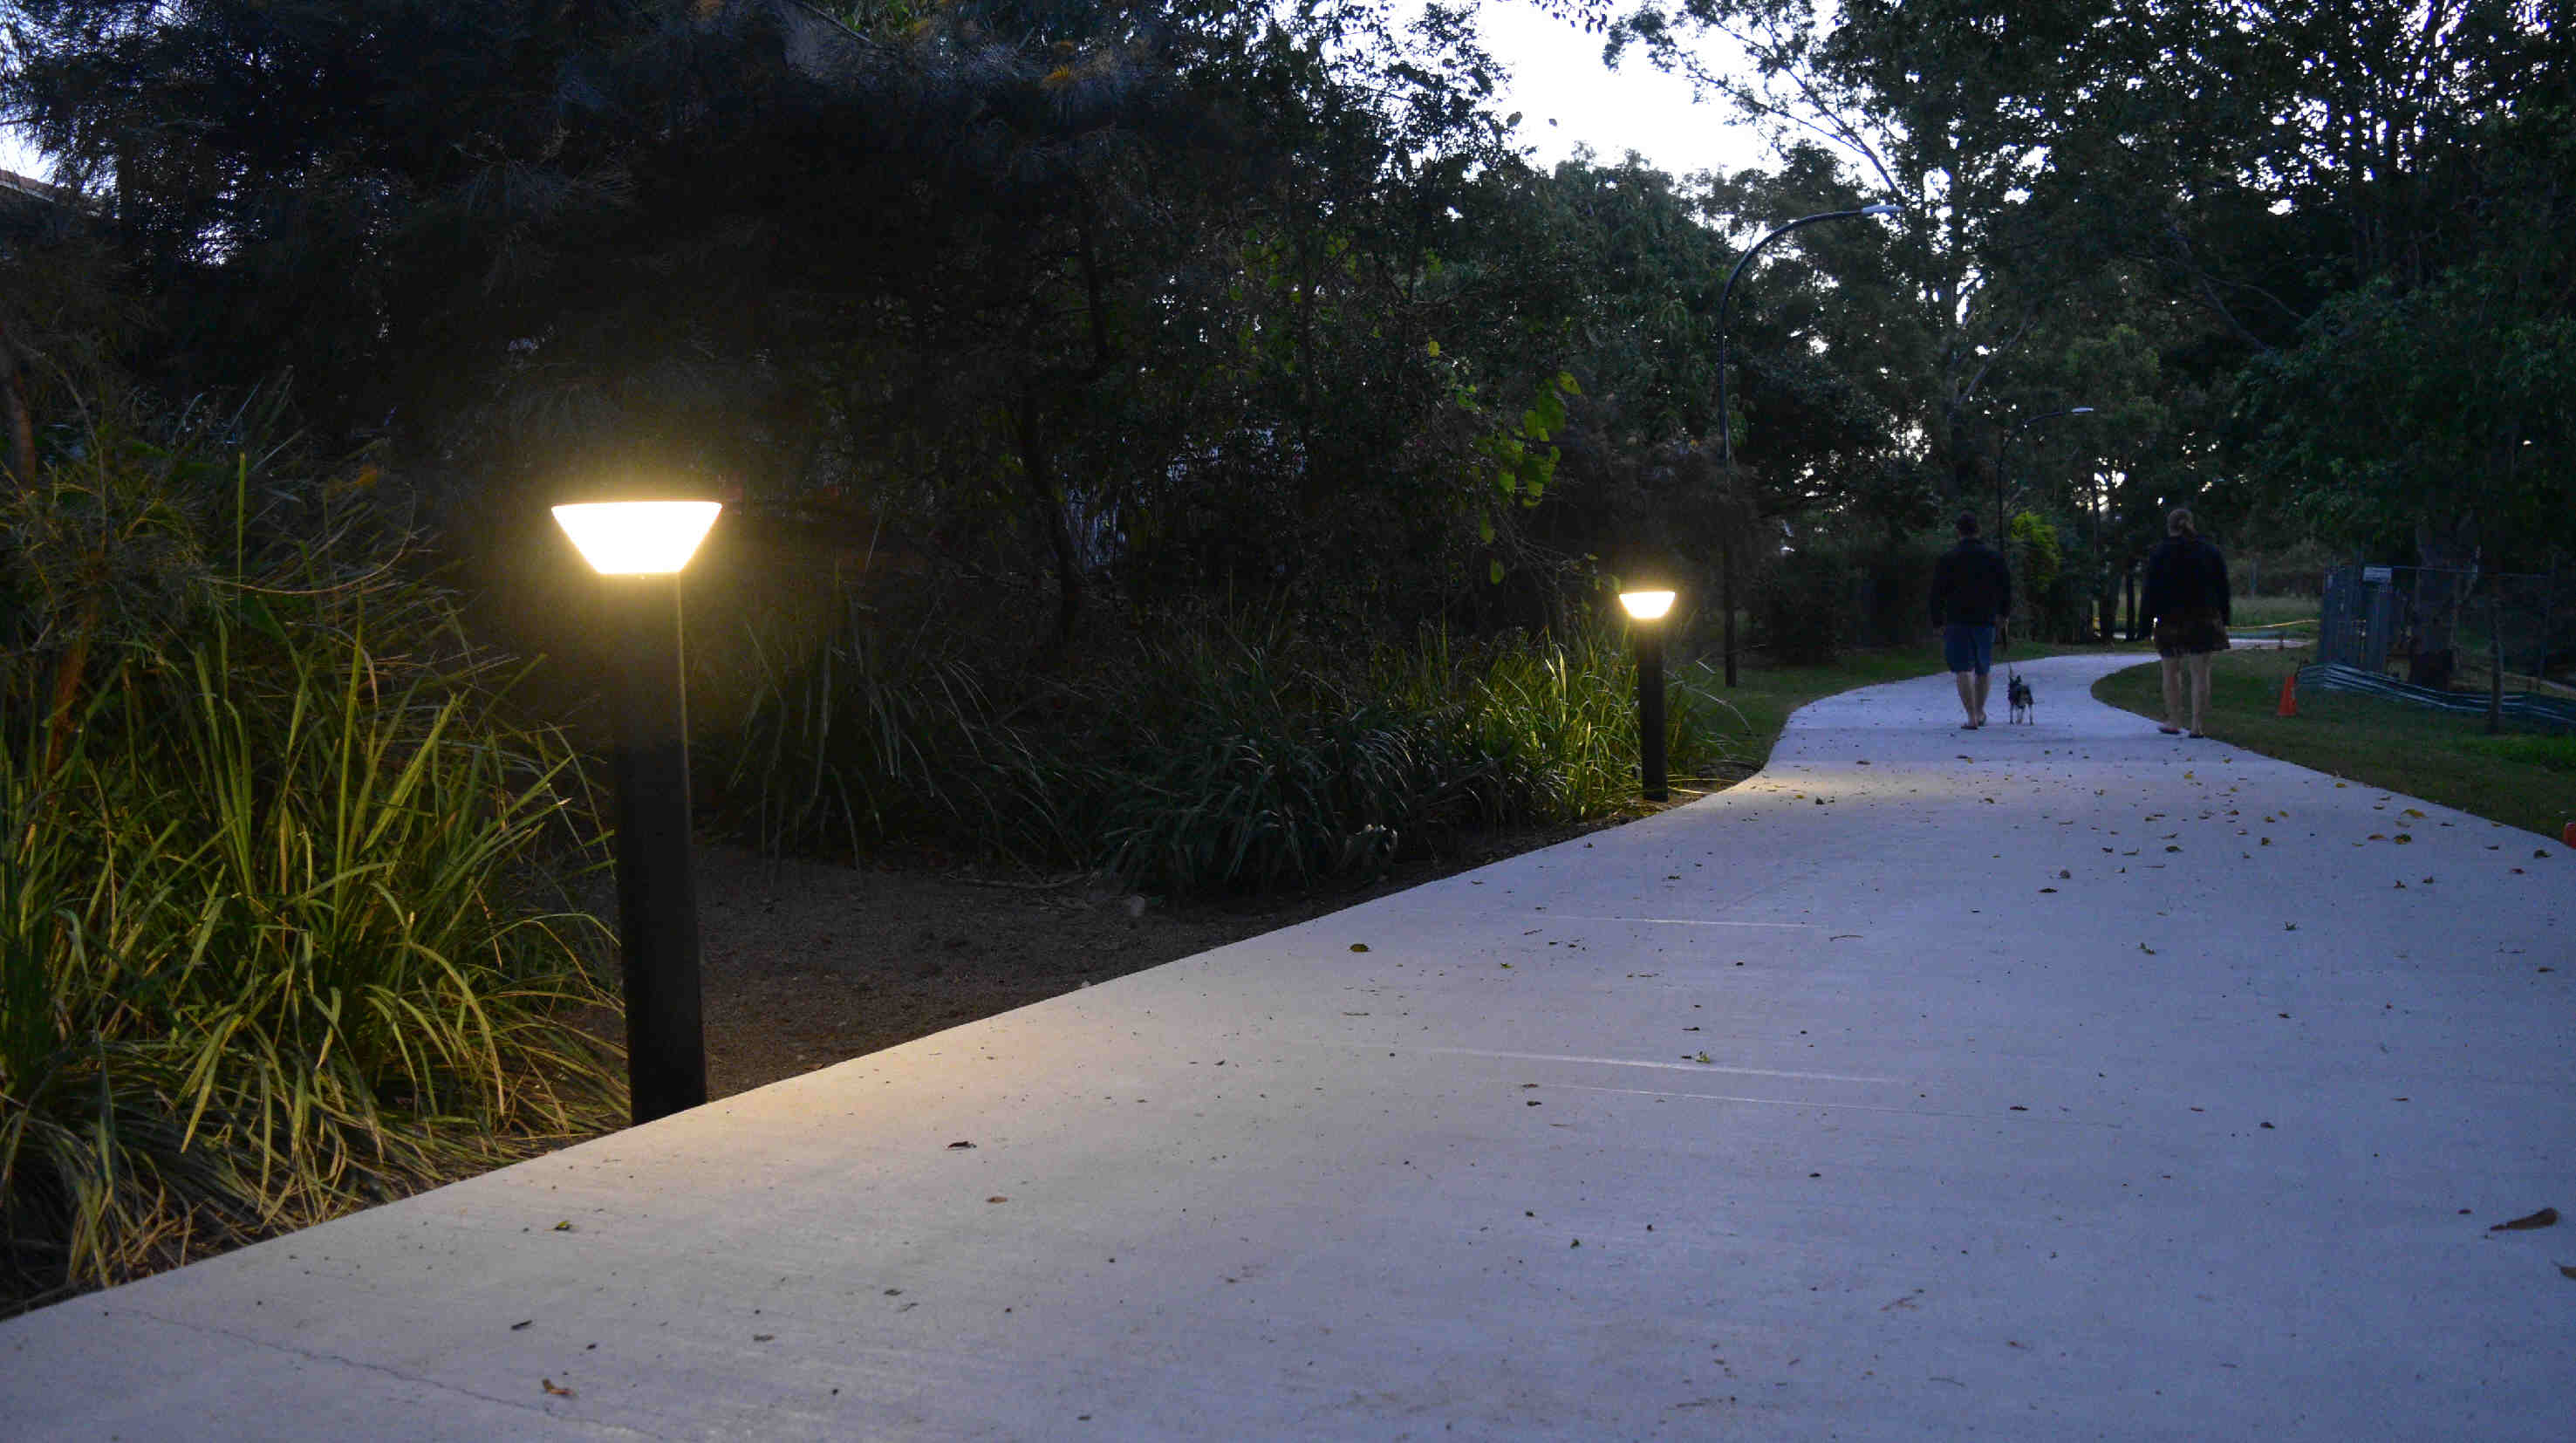 button to view our range of high quality solar powered bollard lights. Solar lights suitable from home to commercial use